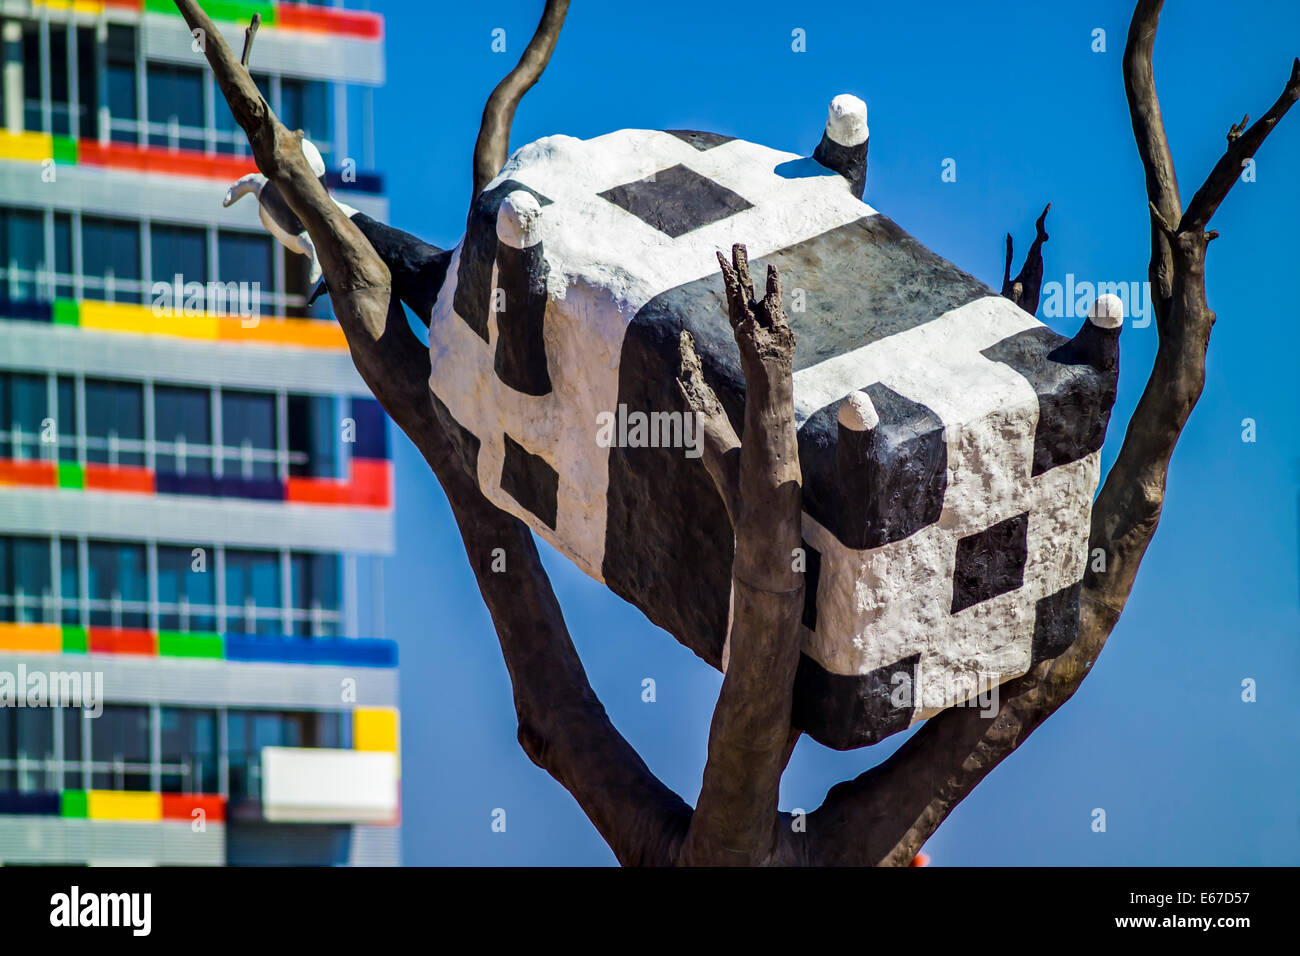 Upside Down Art Cow Up A Tree An Upside Down Cow Sculpture Public Art In The